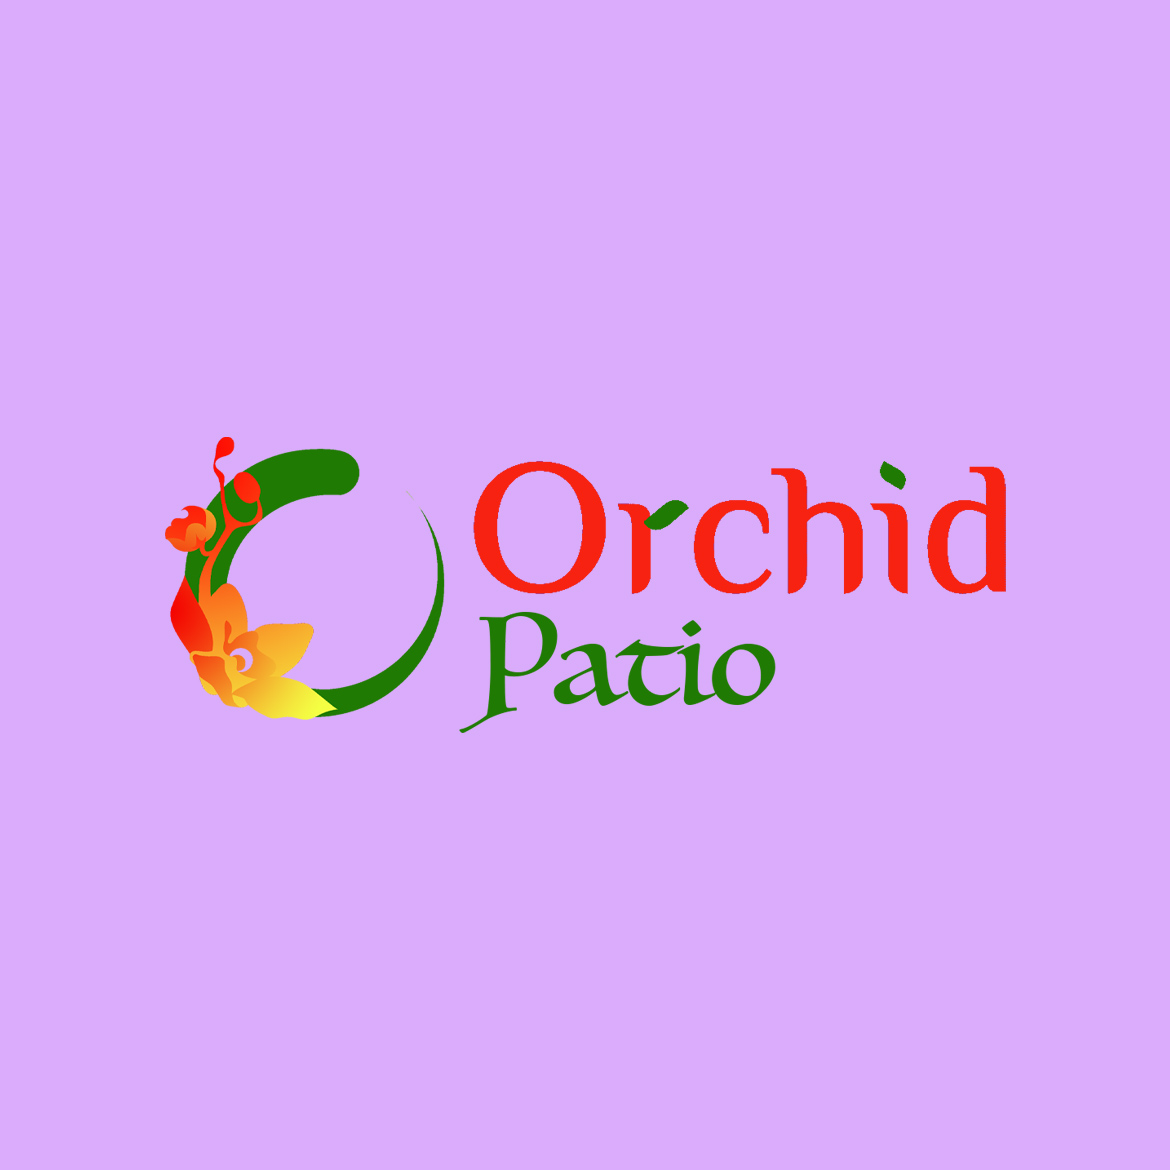 Branding – The Orchid Patio